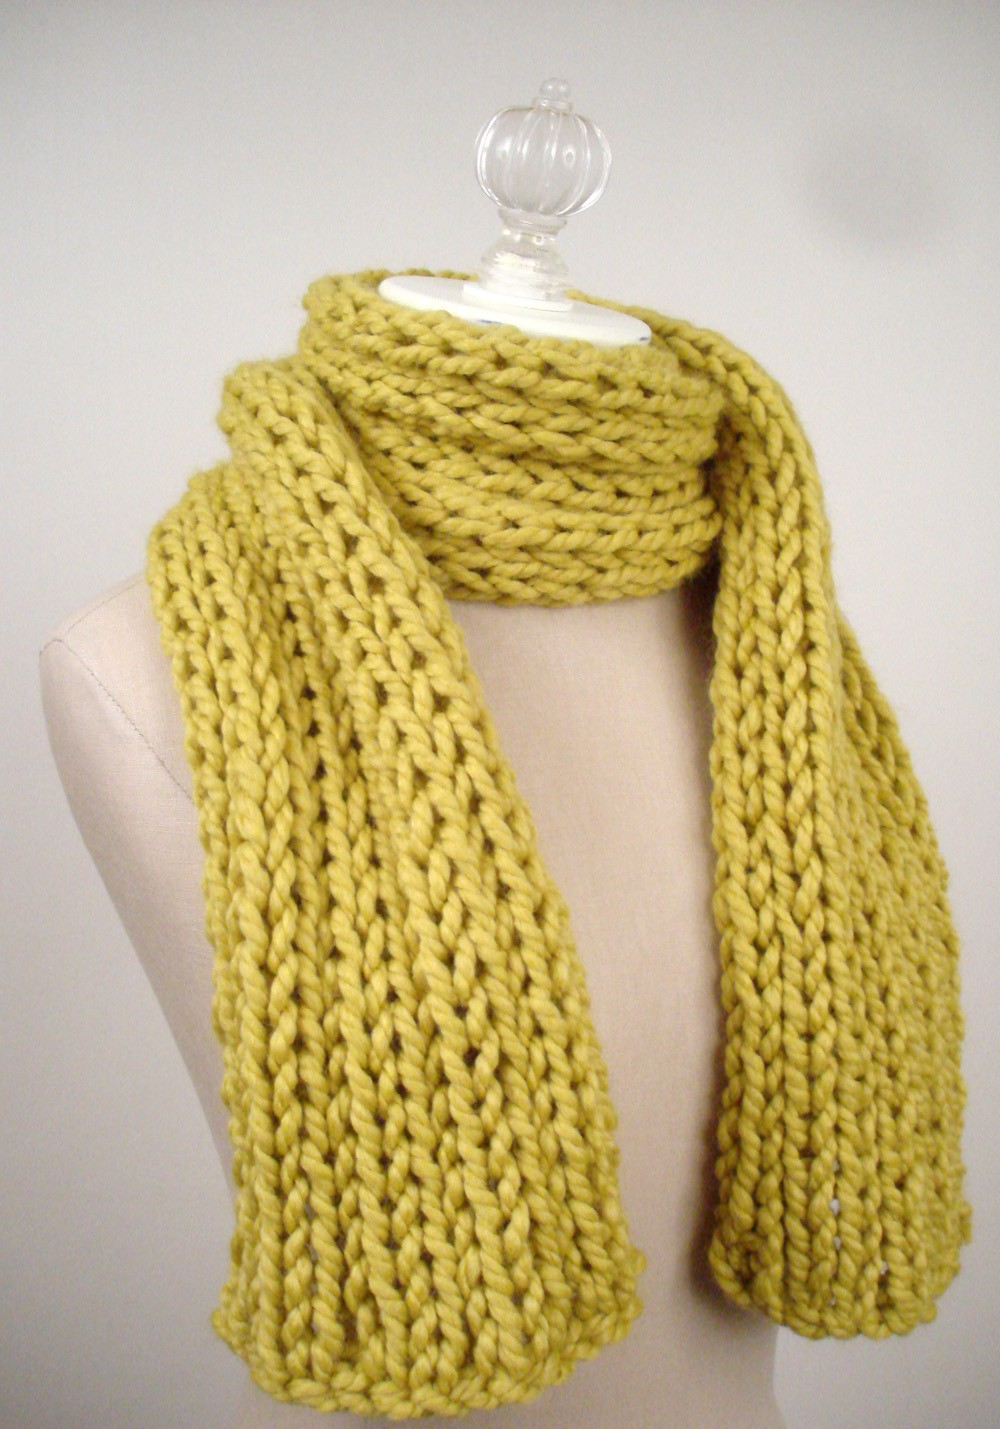 Knitting A Scarf Pattern : Easy knit scarf patterns « free